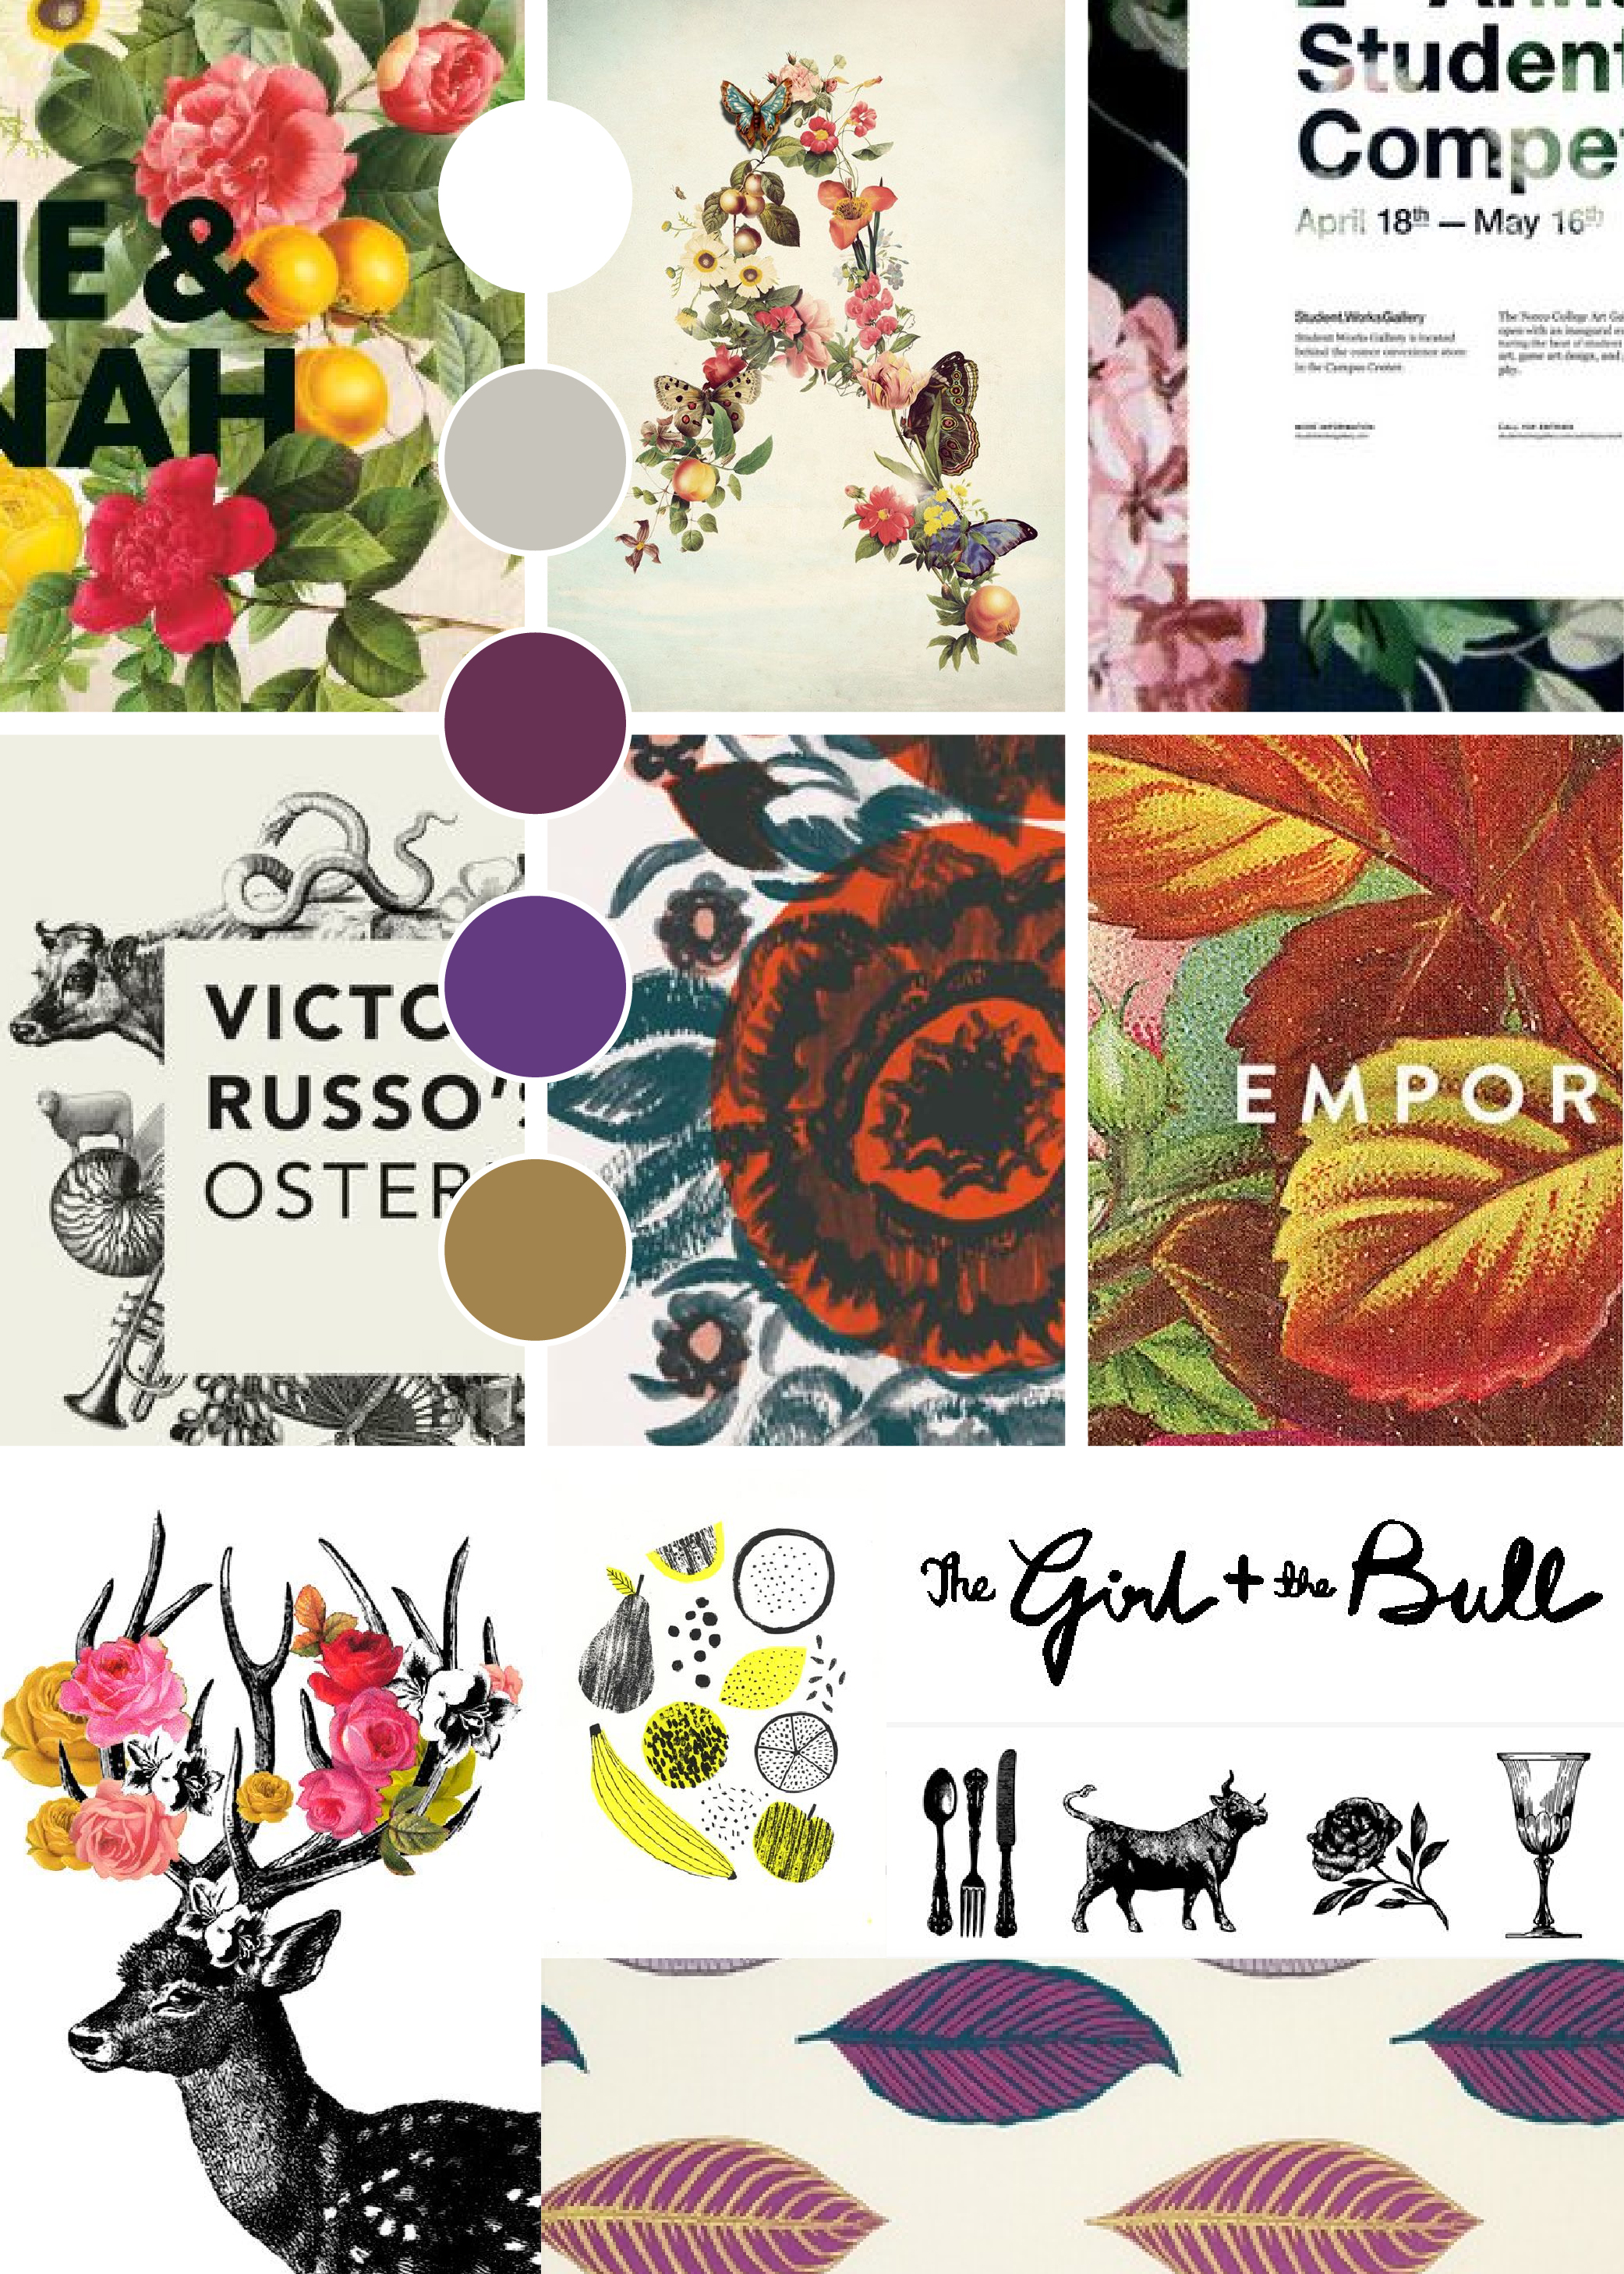 Inspiration Board: Radiant // brianakapper.com // Briana Kapper is a graphic designer who loves freelancing for small brands and churches.